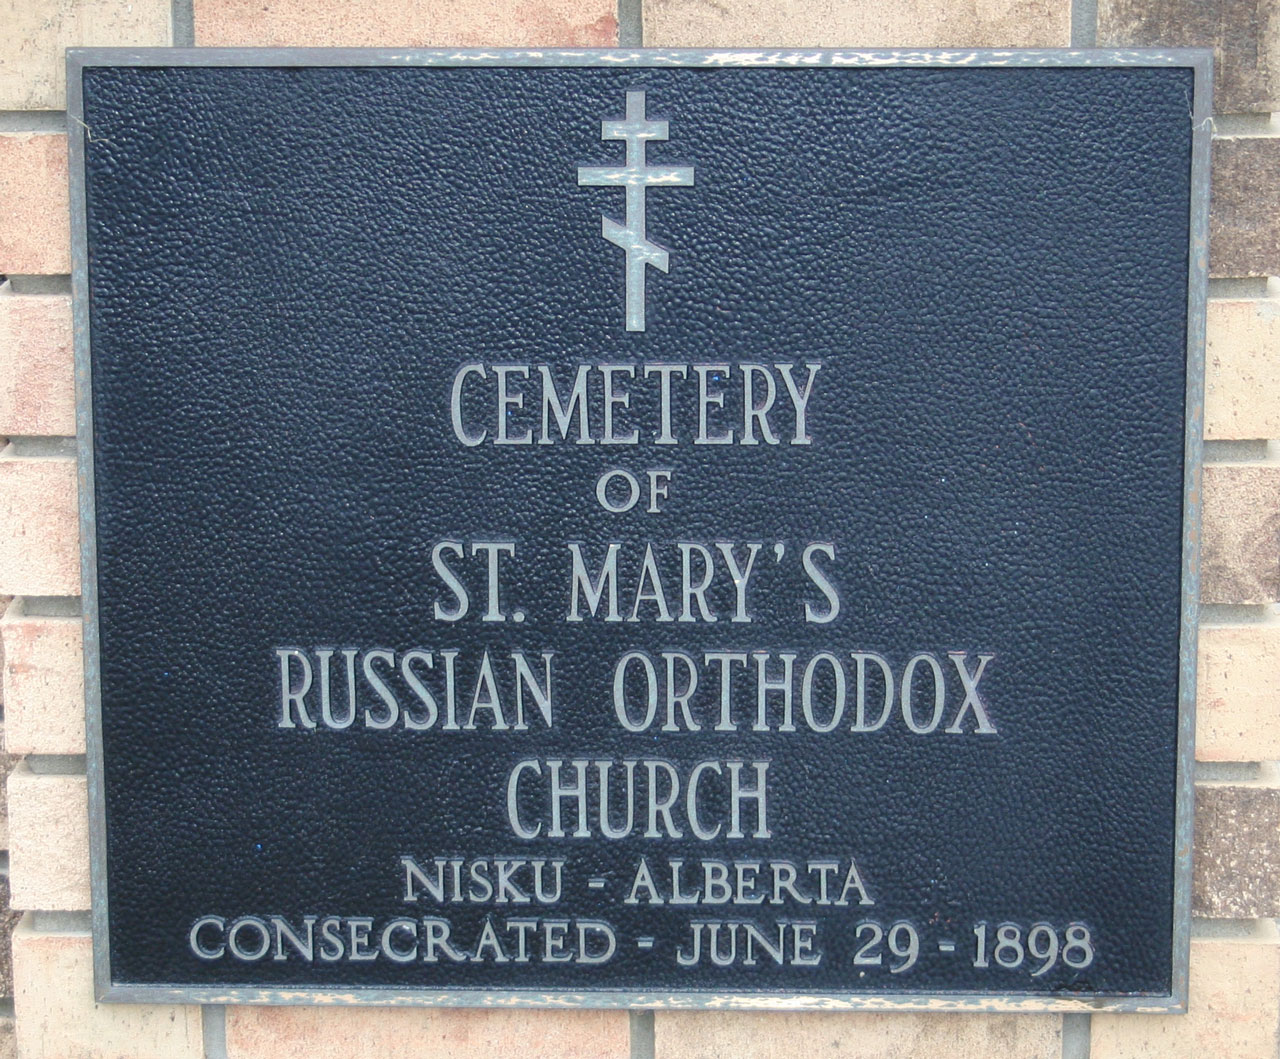 St. Mary's Russian Orthodox Cemetery